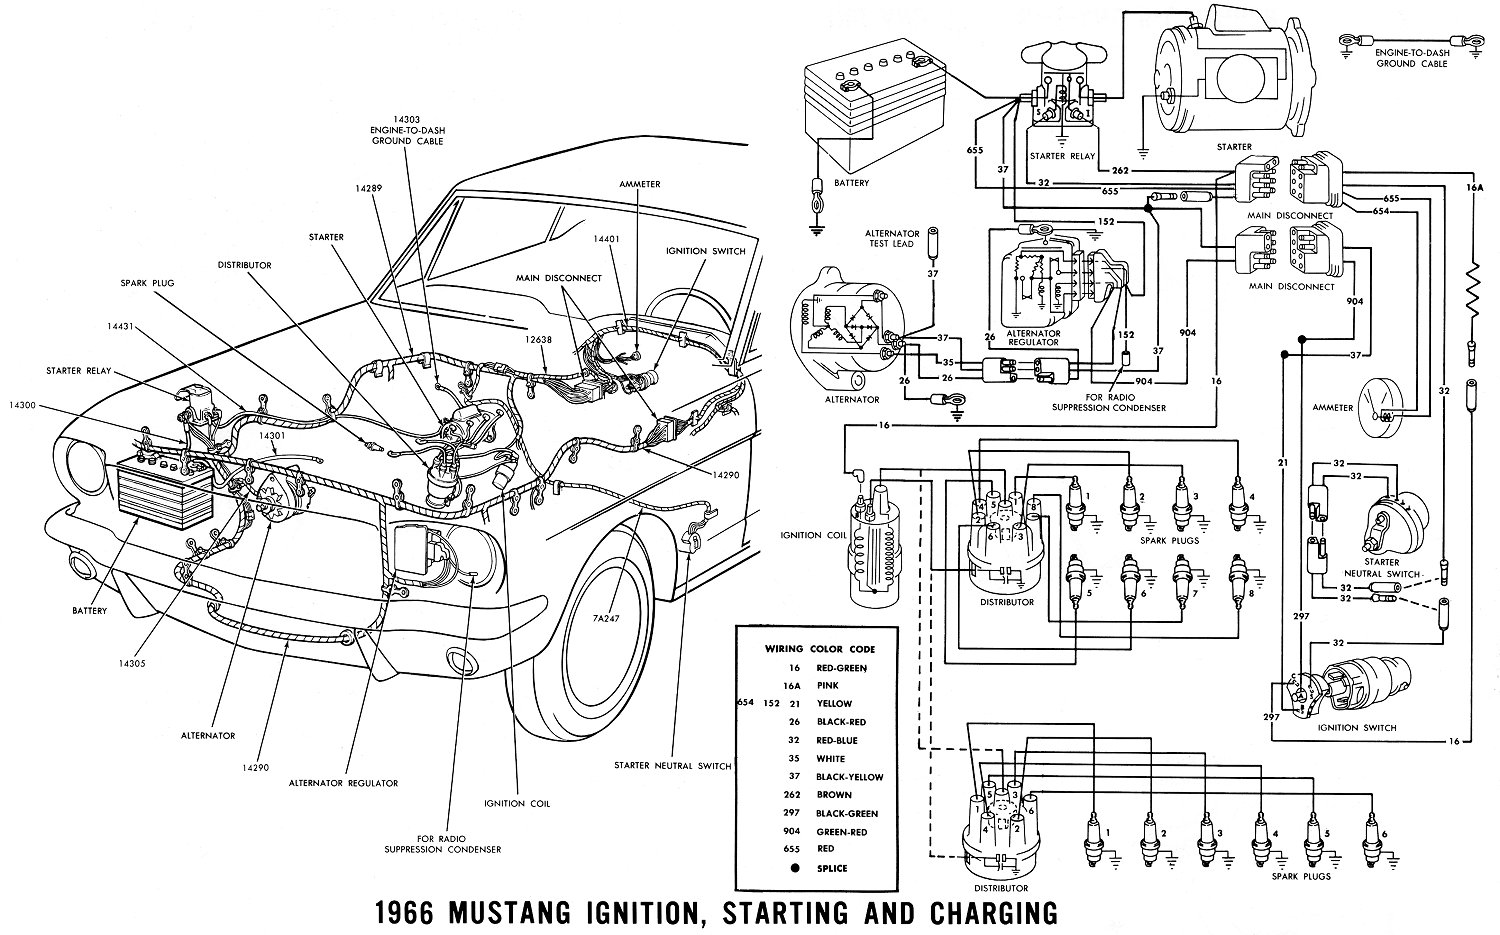 Vintage Mustang Wiring Diagrams Basic Click For Details Diagram With Accessory And 66 Instrument Cluster Detail Ignition